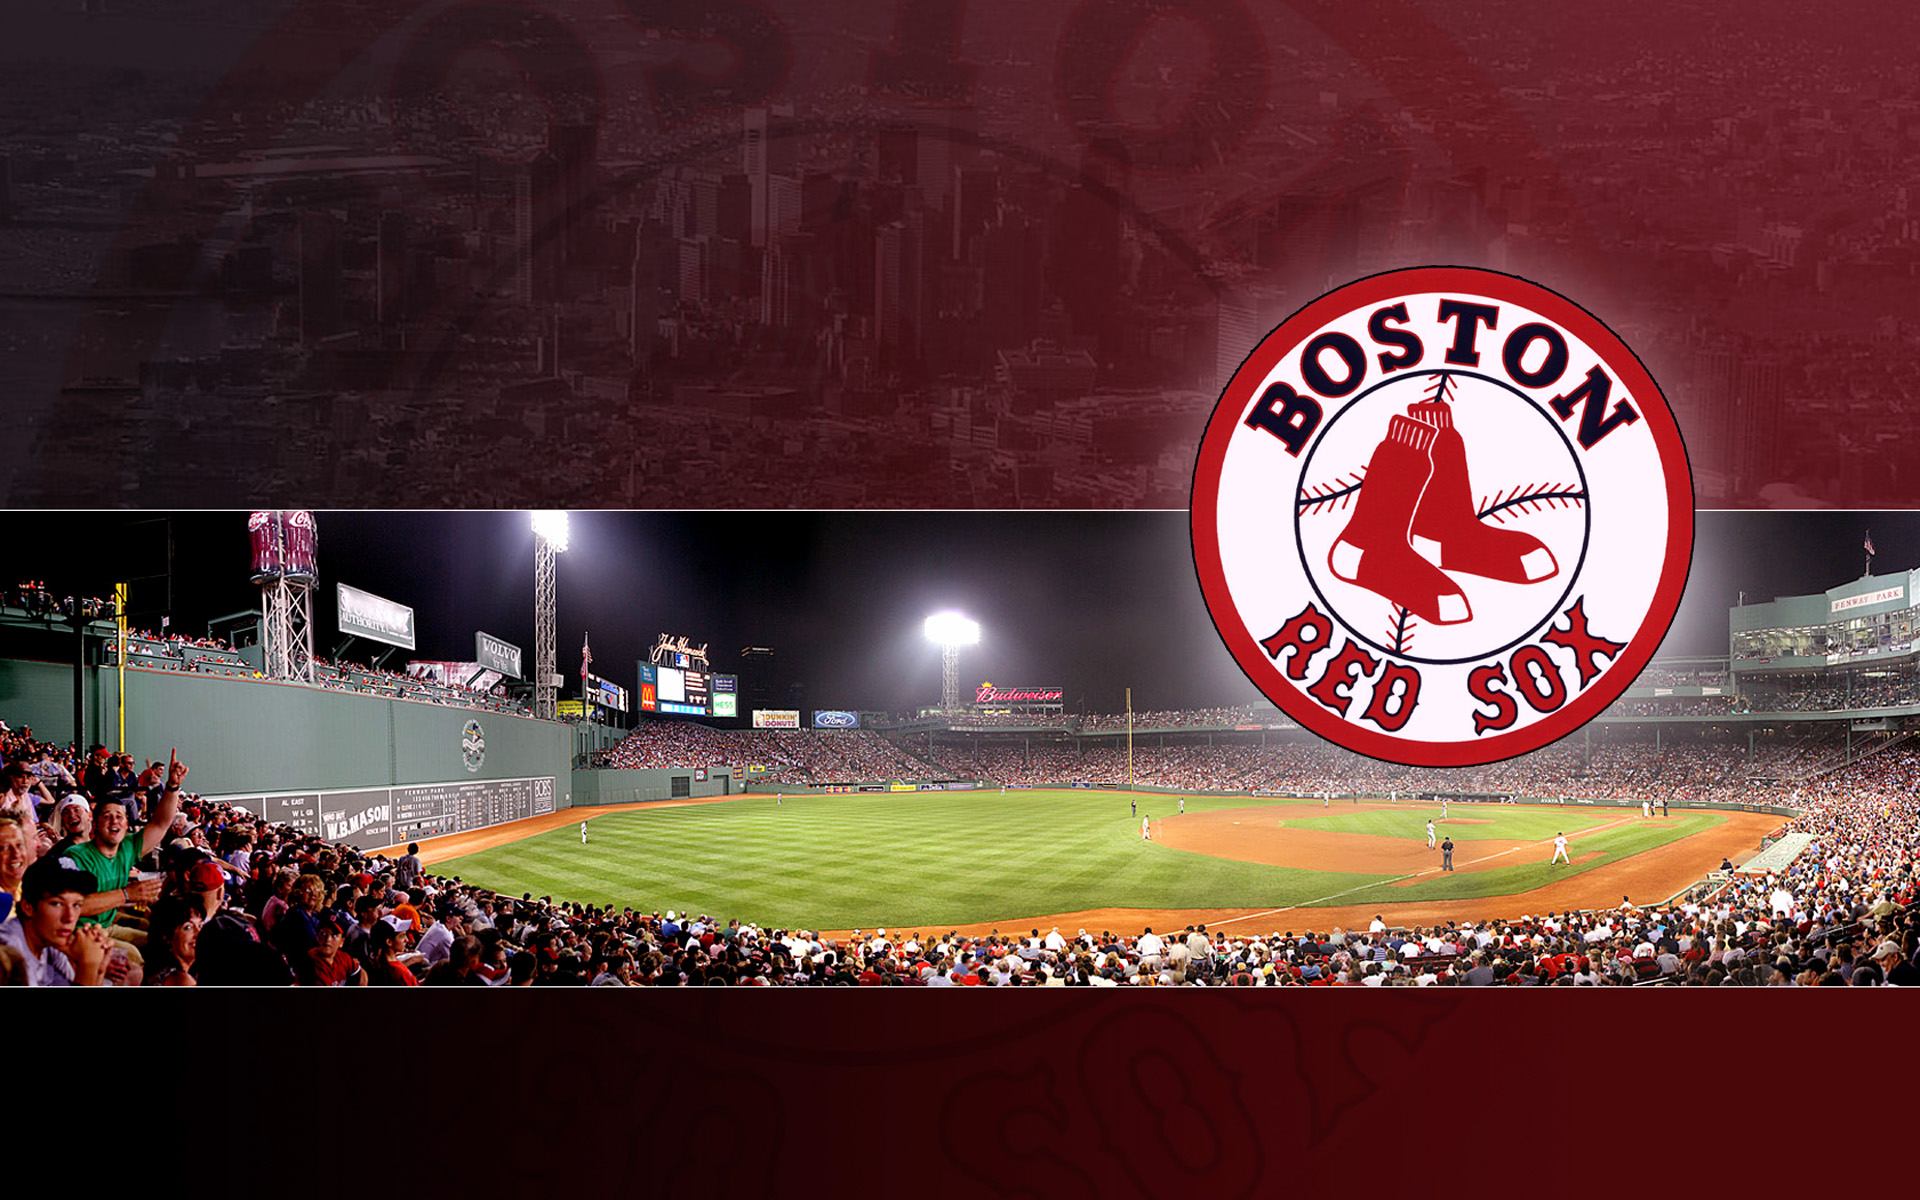 1920x1200 - Boston Red Sox Wallpaper Screensavers 24